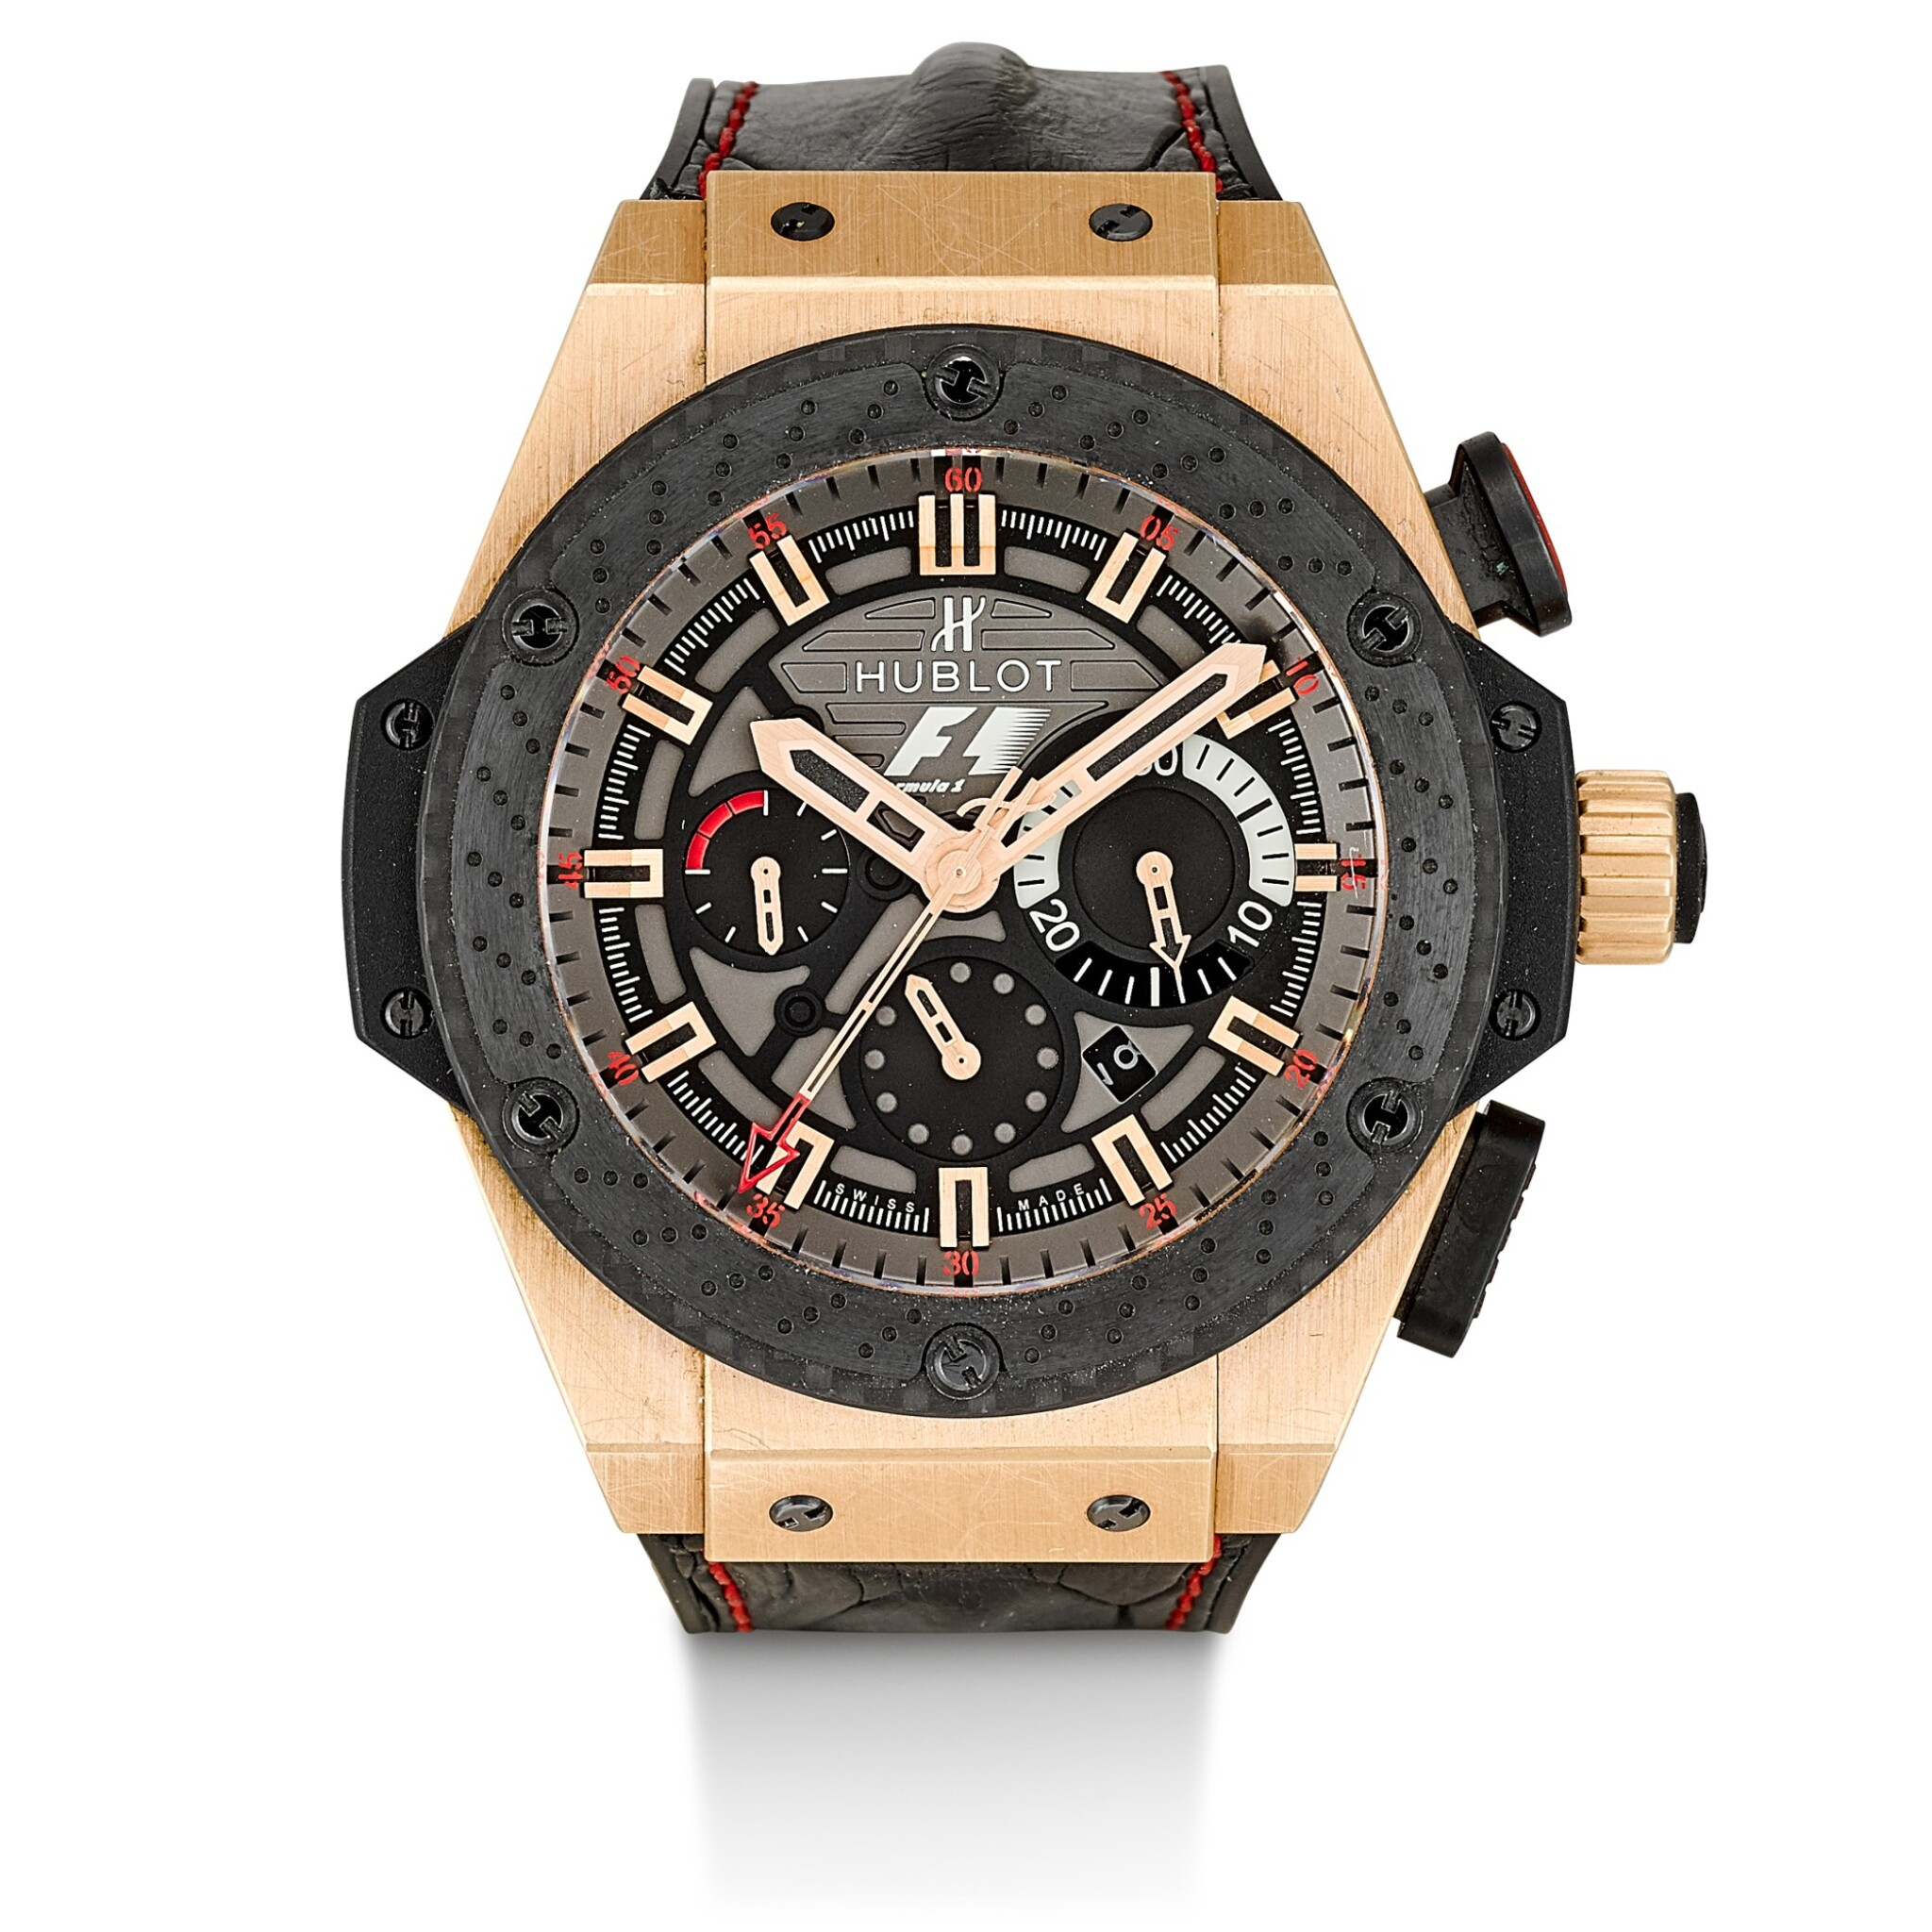 View 1 of Lot 168. HUBLOT | BIG BANG KING POWER, REFERENCE 703.OM.6912.HR.FMC12, A LIMITED EDITION PINK GOLD AND TITANIUM CHRONOGRAPH WRISTWATCH WITH DATE, CIRCA 2012.